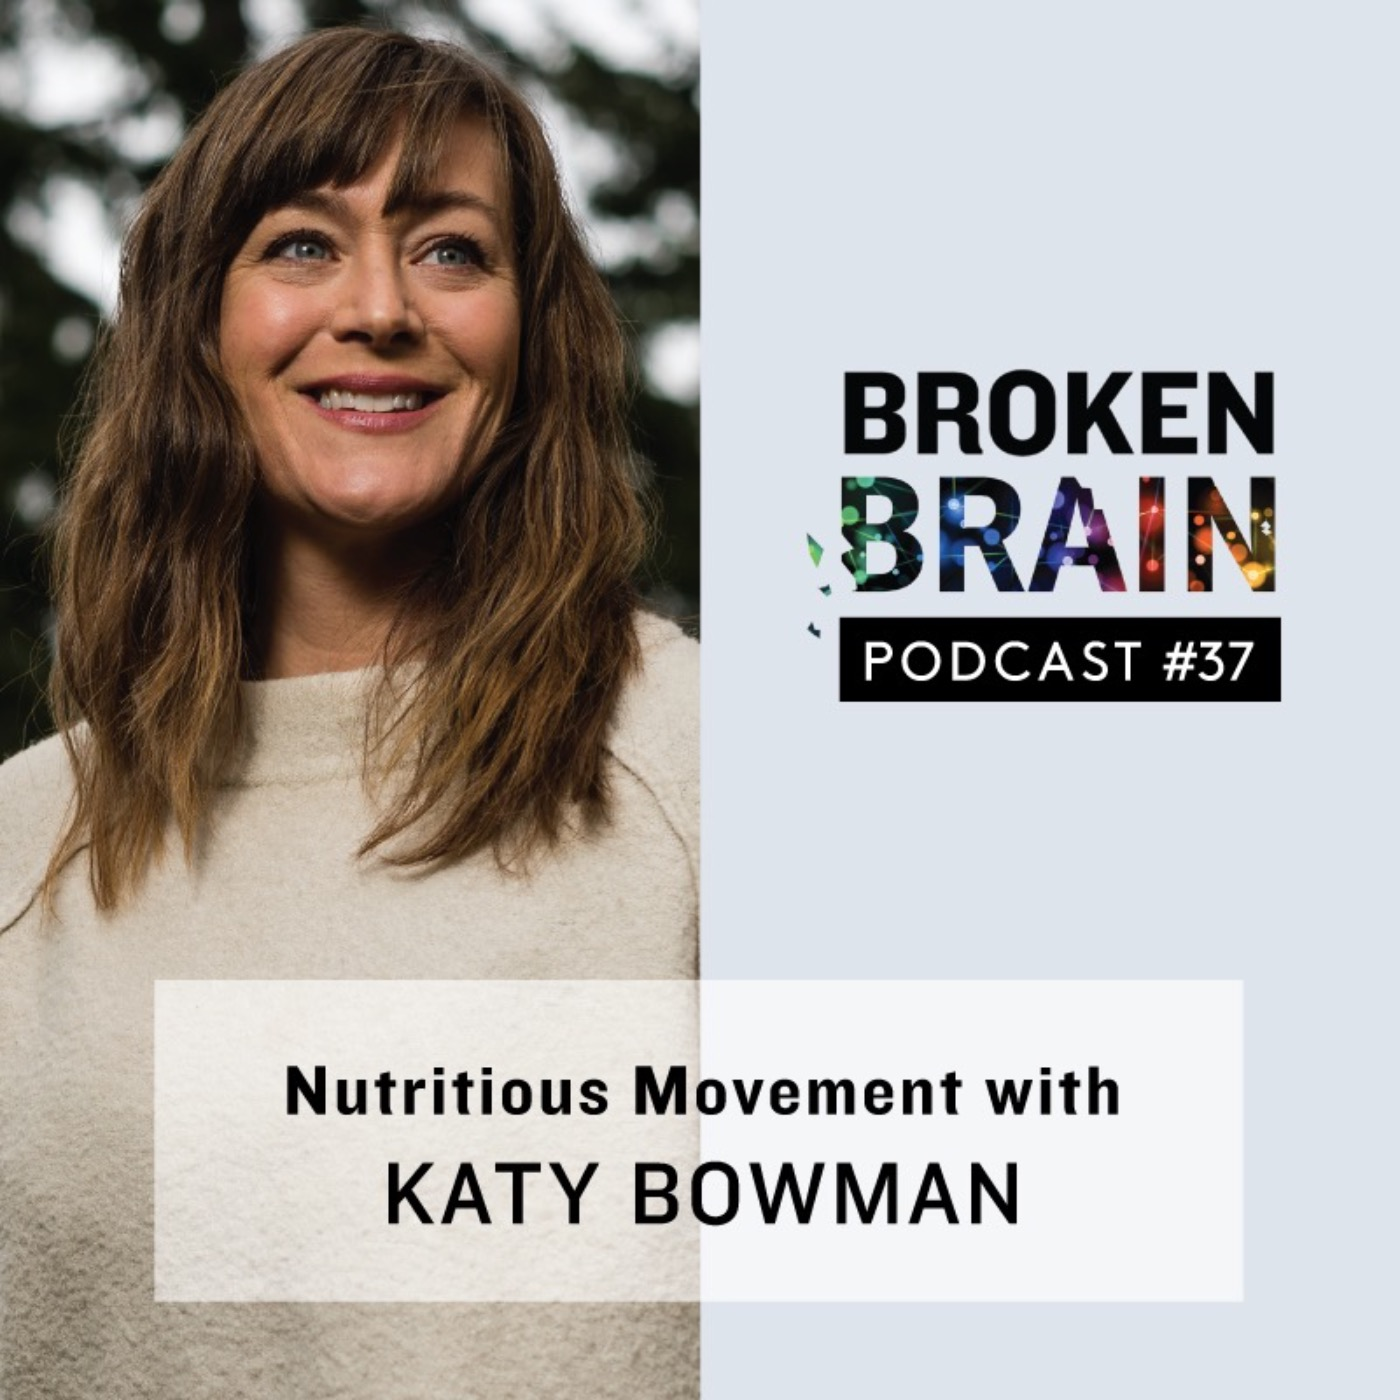 #37: Nutritious Movement with Katy Bowman